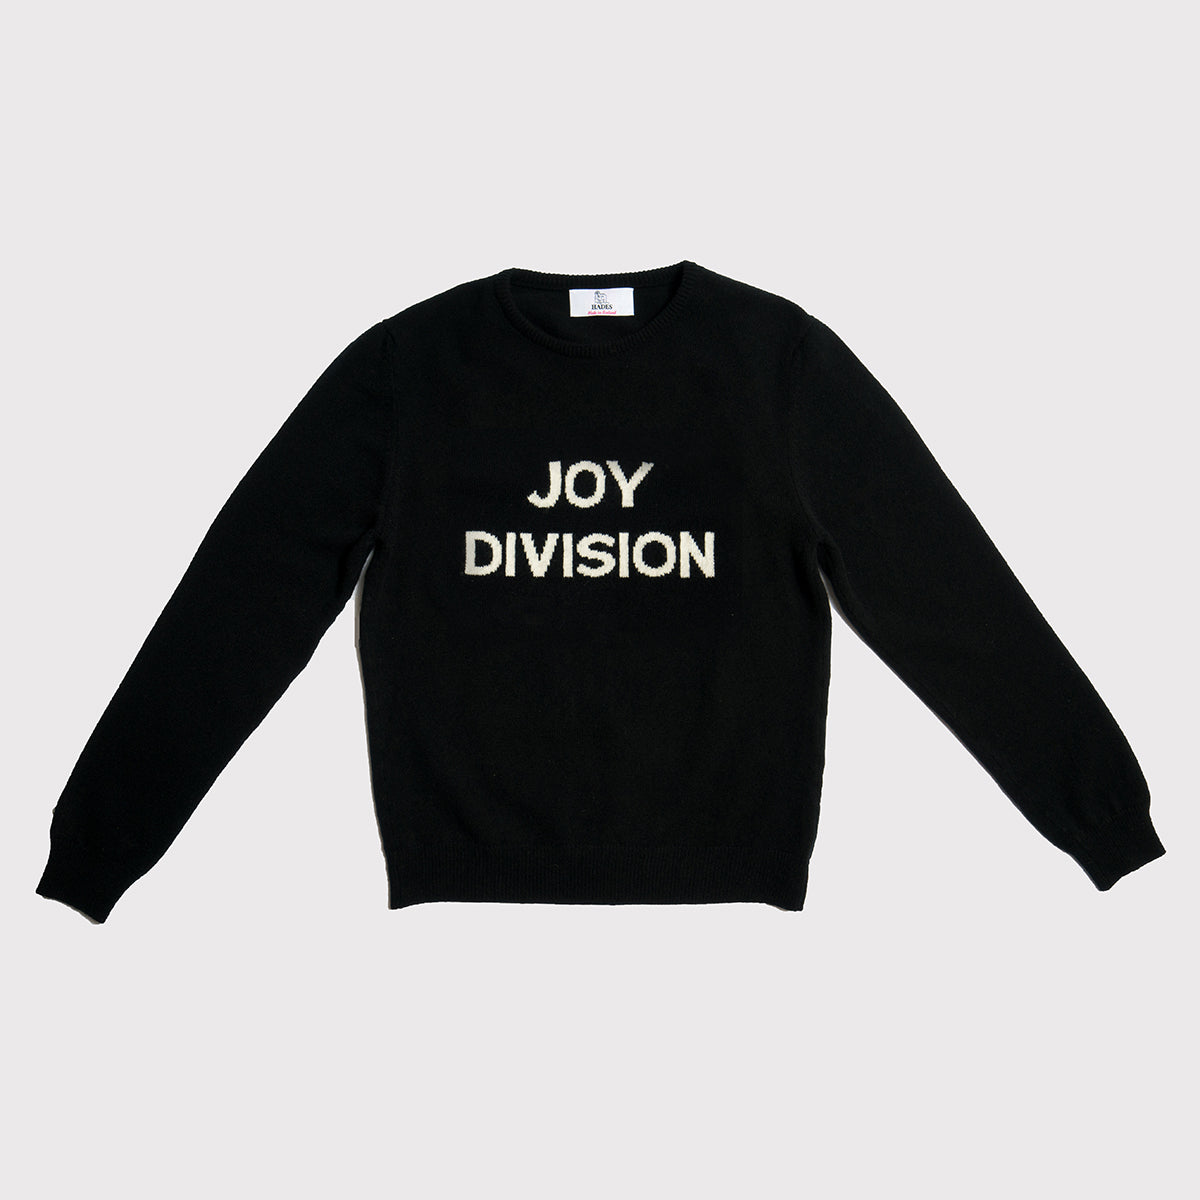 Joy Division | Black & White | Men's- XL Available